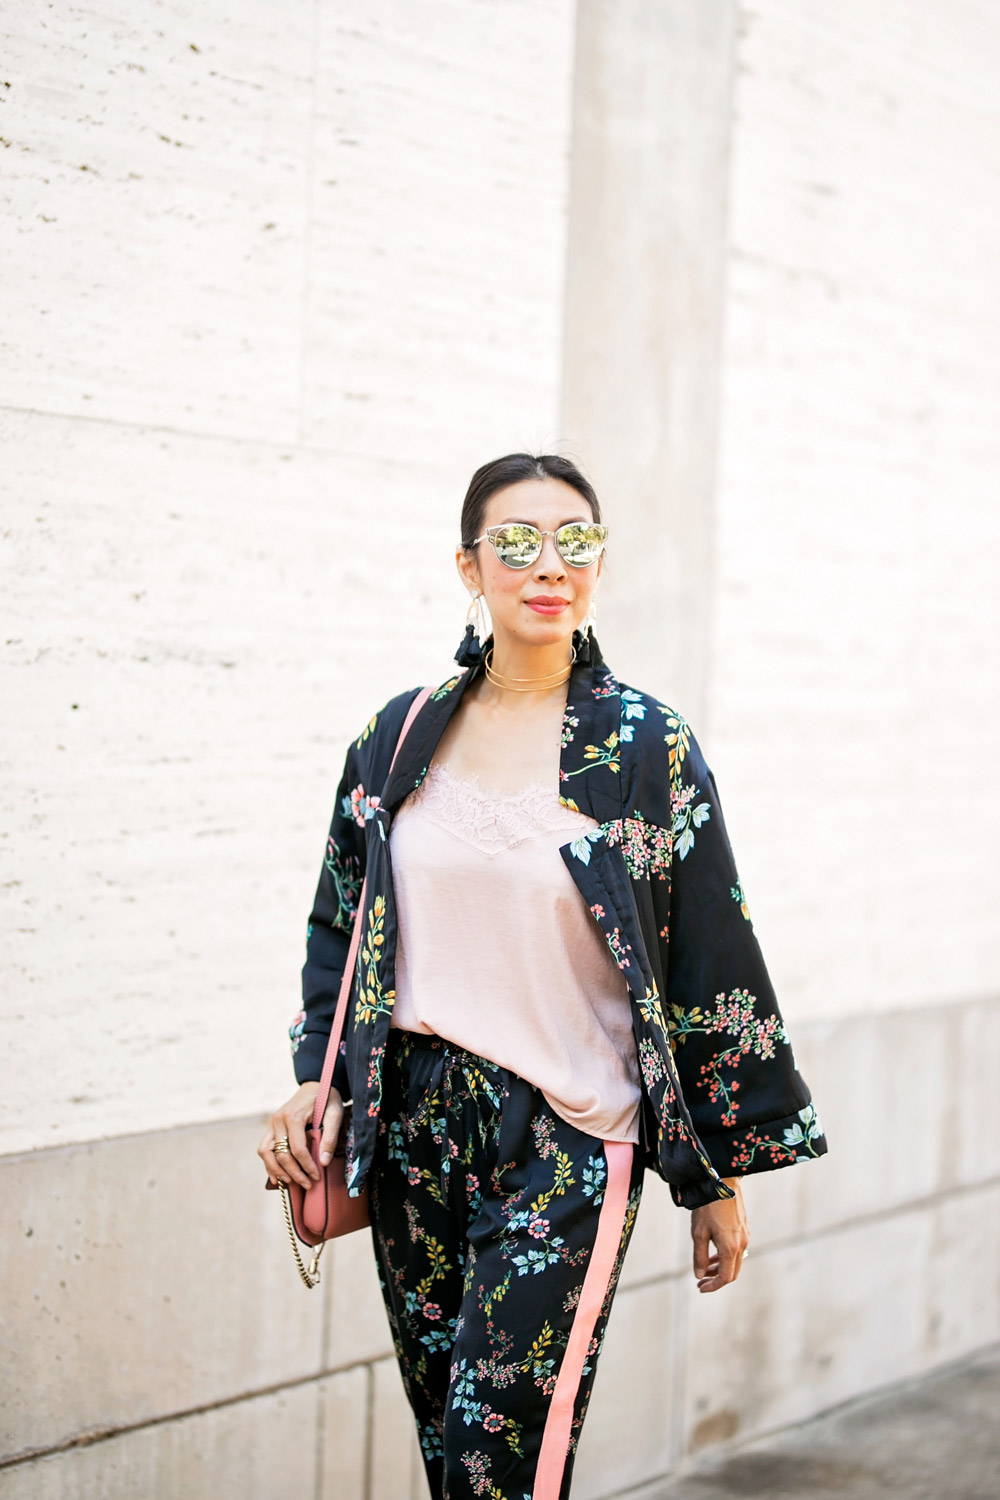 wear who what wear collection floral kimono pajama set baublebar tassel earrings pink lace cami